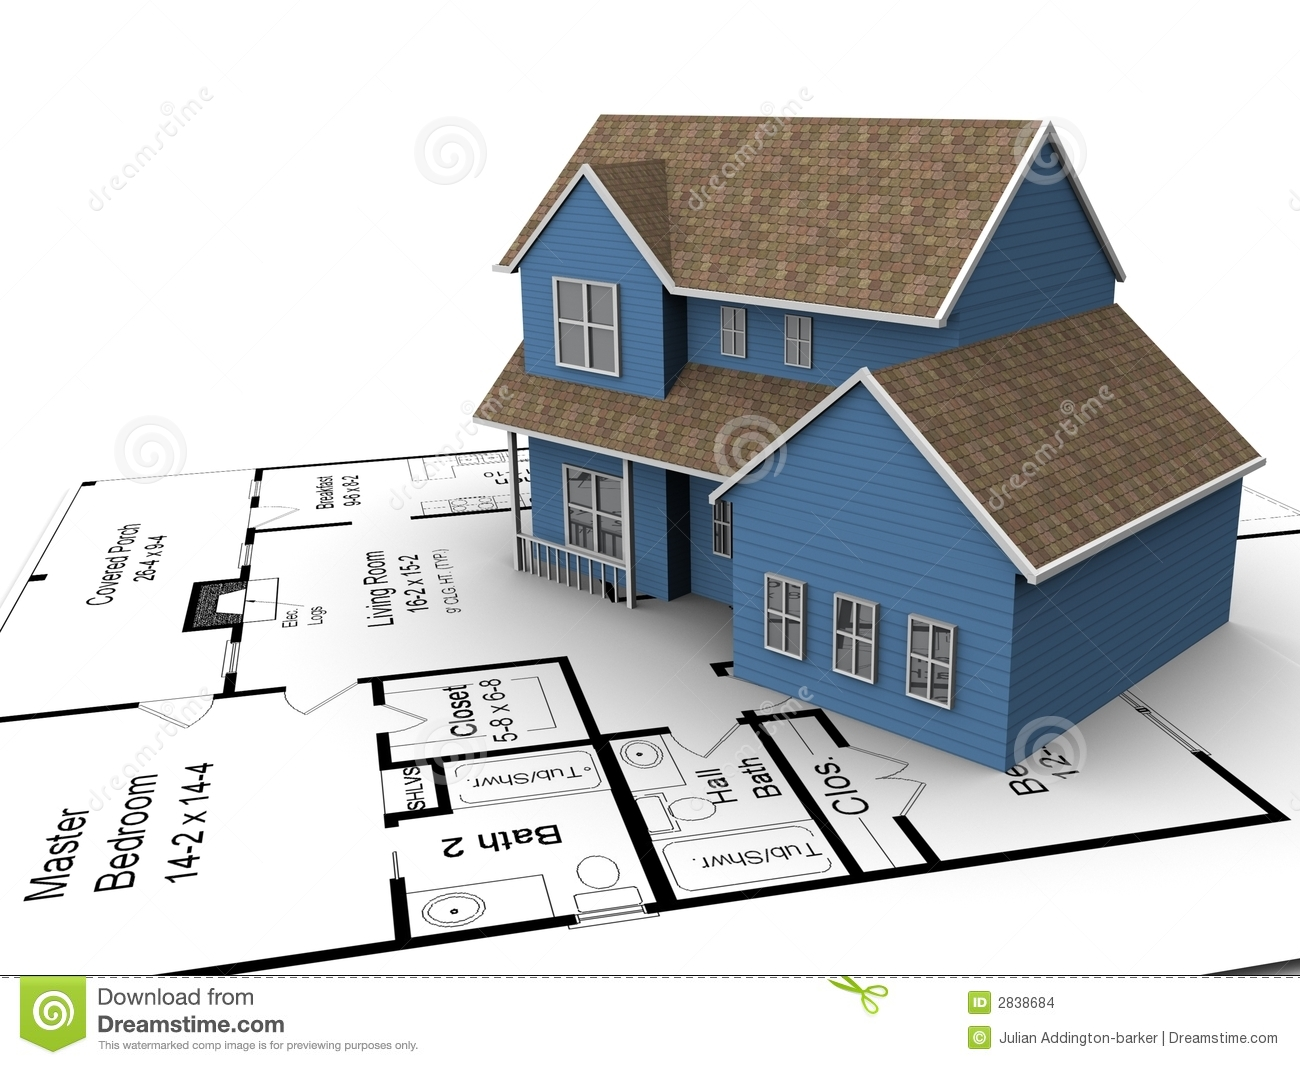 New house plans stock illustration image of design for New home construction designs